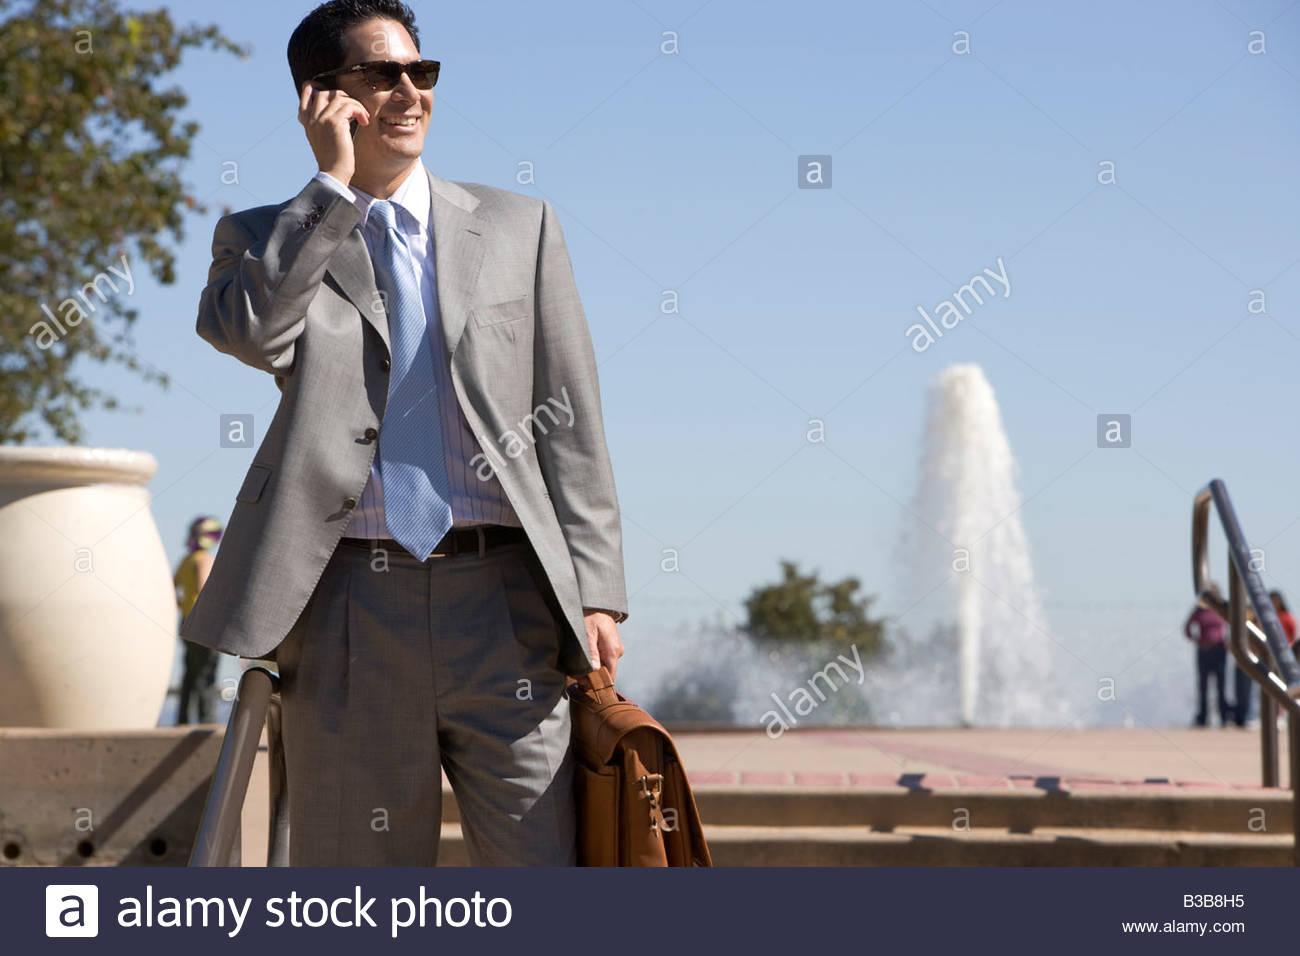 Businessman talking on cell phone outdoors - Stock Image